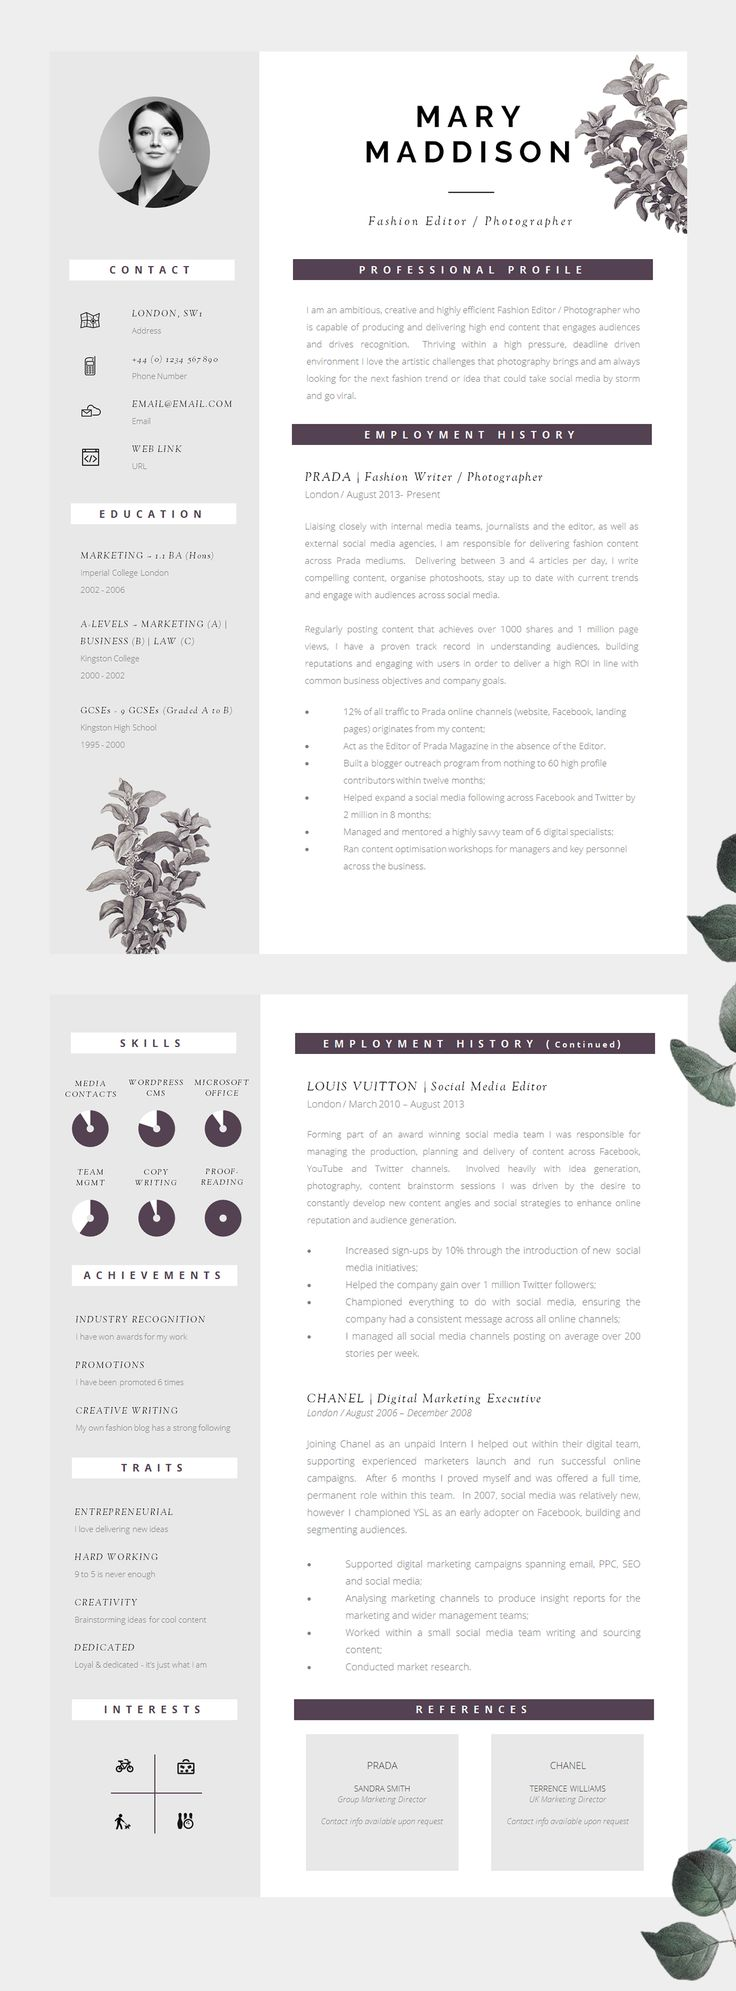 Famous 1 Page Resume Format Free Download Tall 10 Envelope Template Shaped 15 Year Old Resume Sample 18th Invitation Templates Old 1and1 Templates Brown2 Binder Spine Template 25  Best Ideas About Professional Resume Design On Pinterest ..